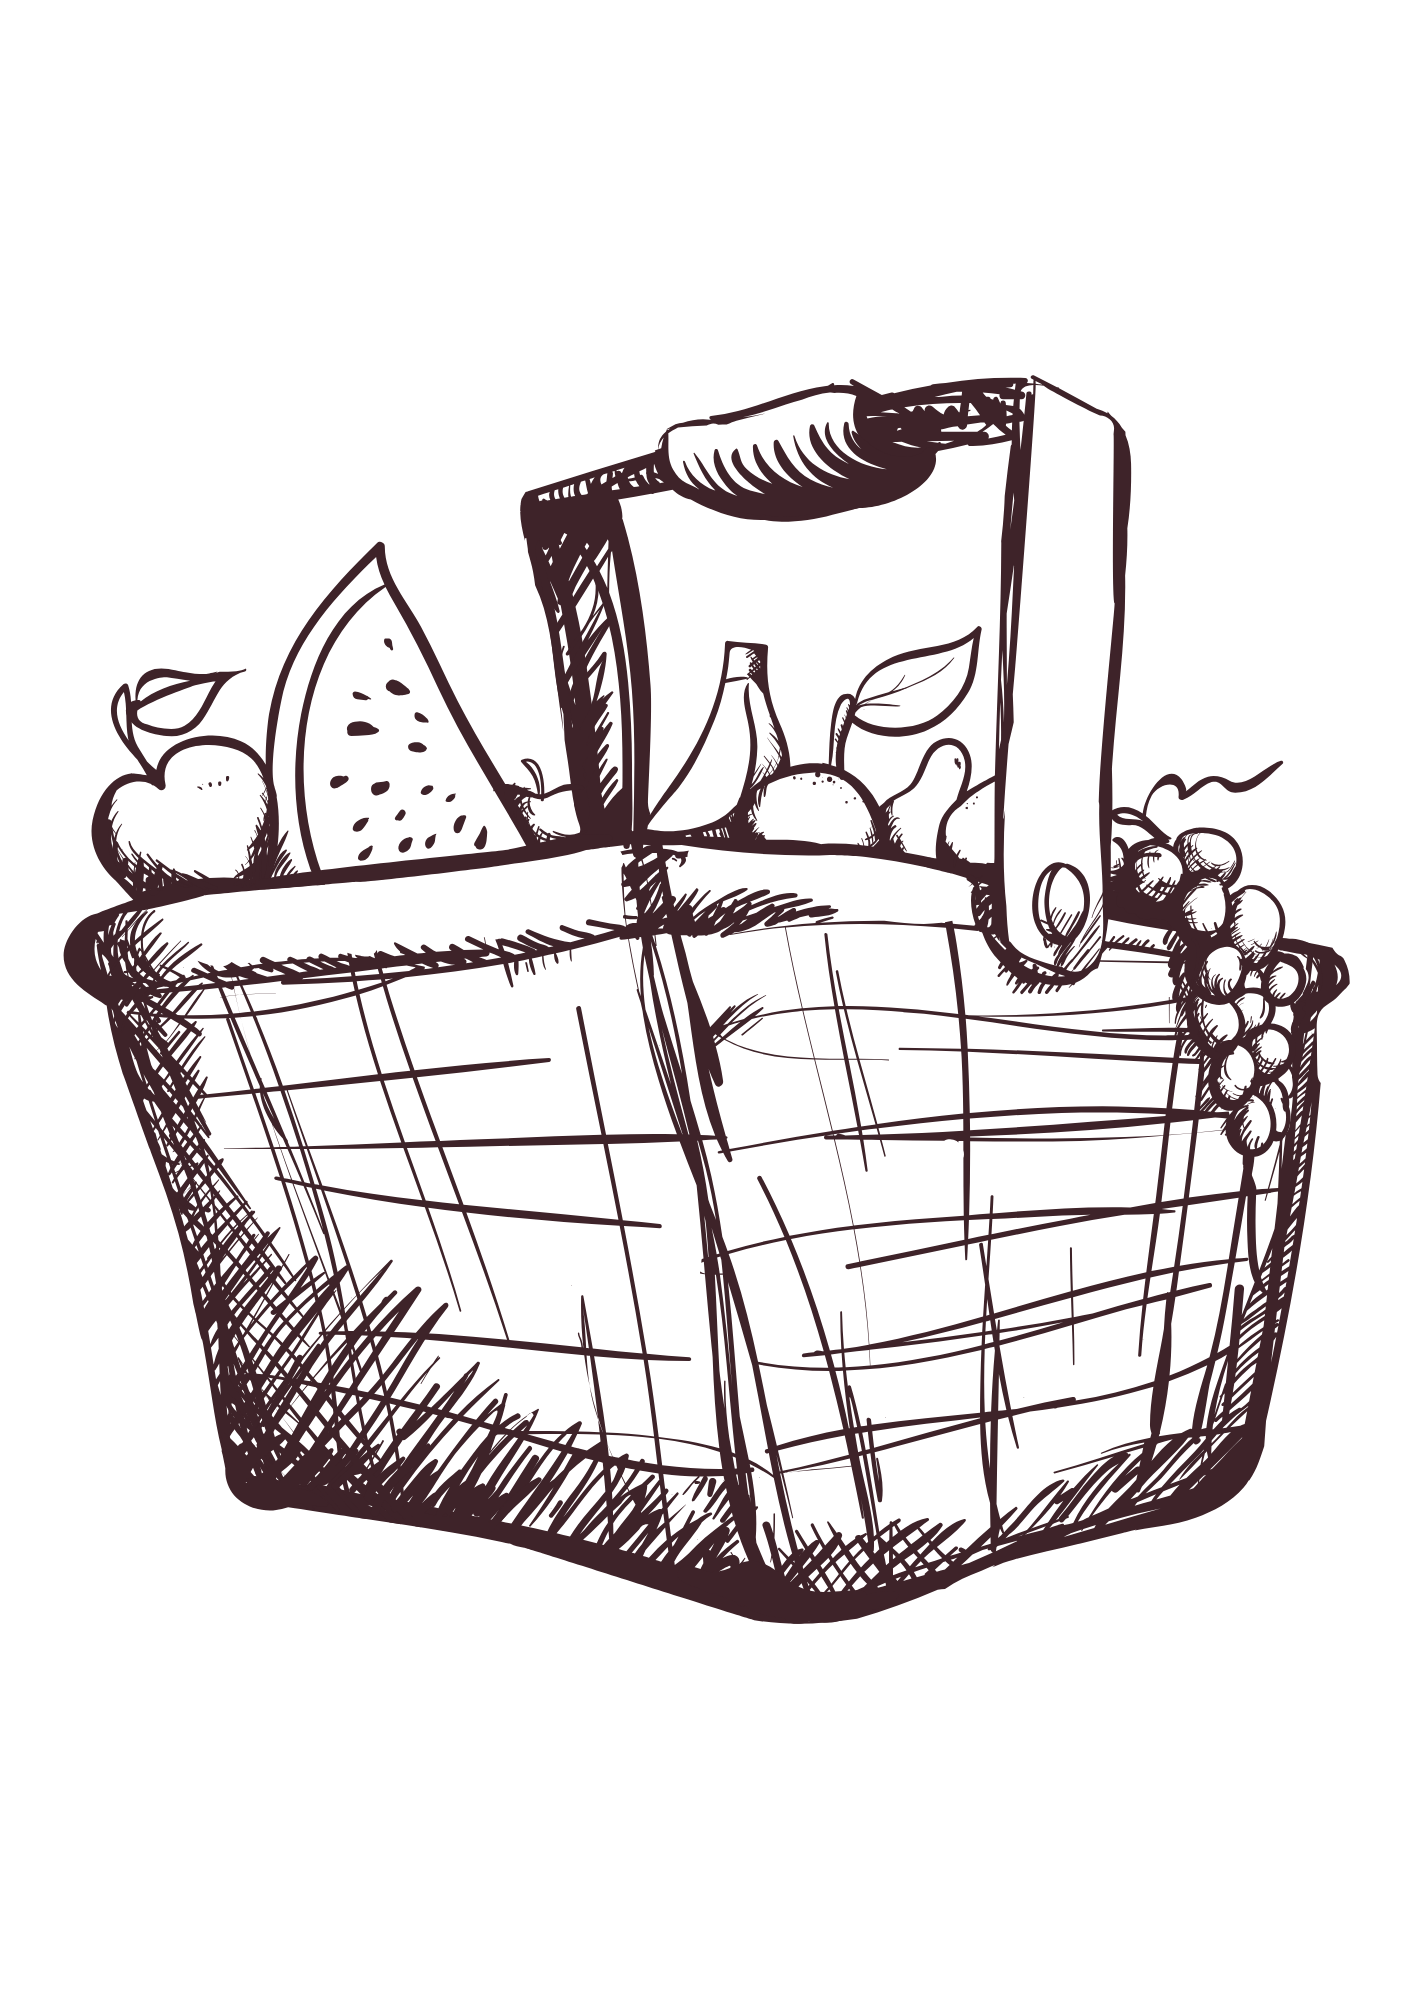 Image of 18th July - PICNIC HAMPER - Saturday Collection - 12:00-14:00